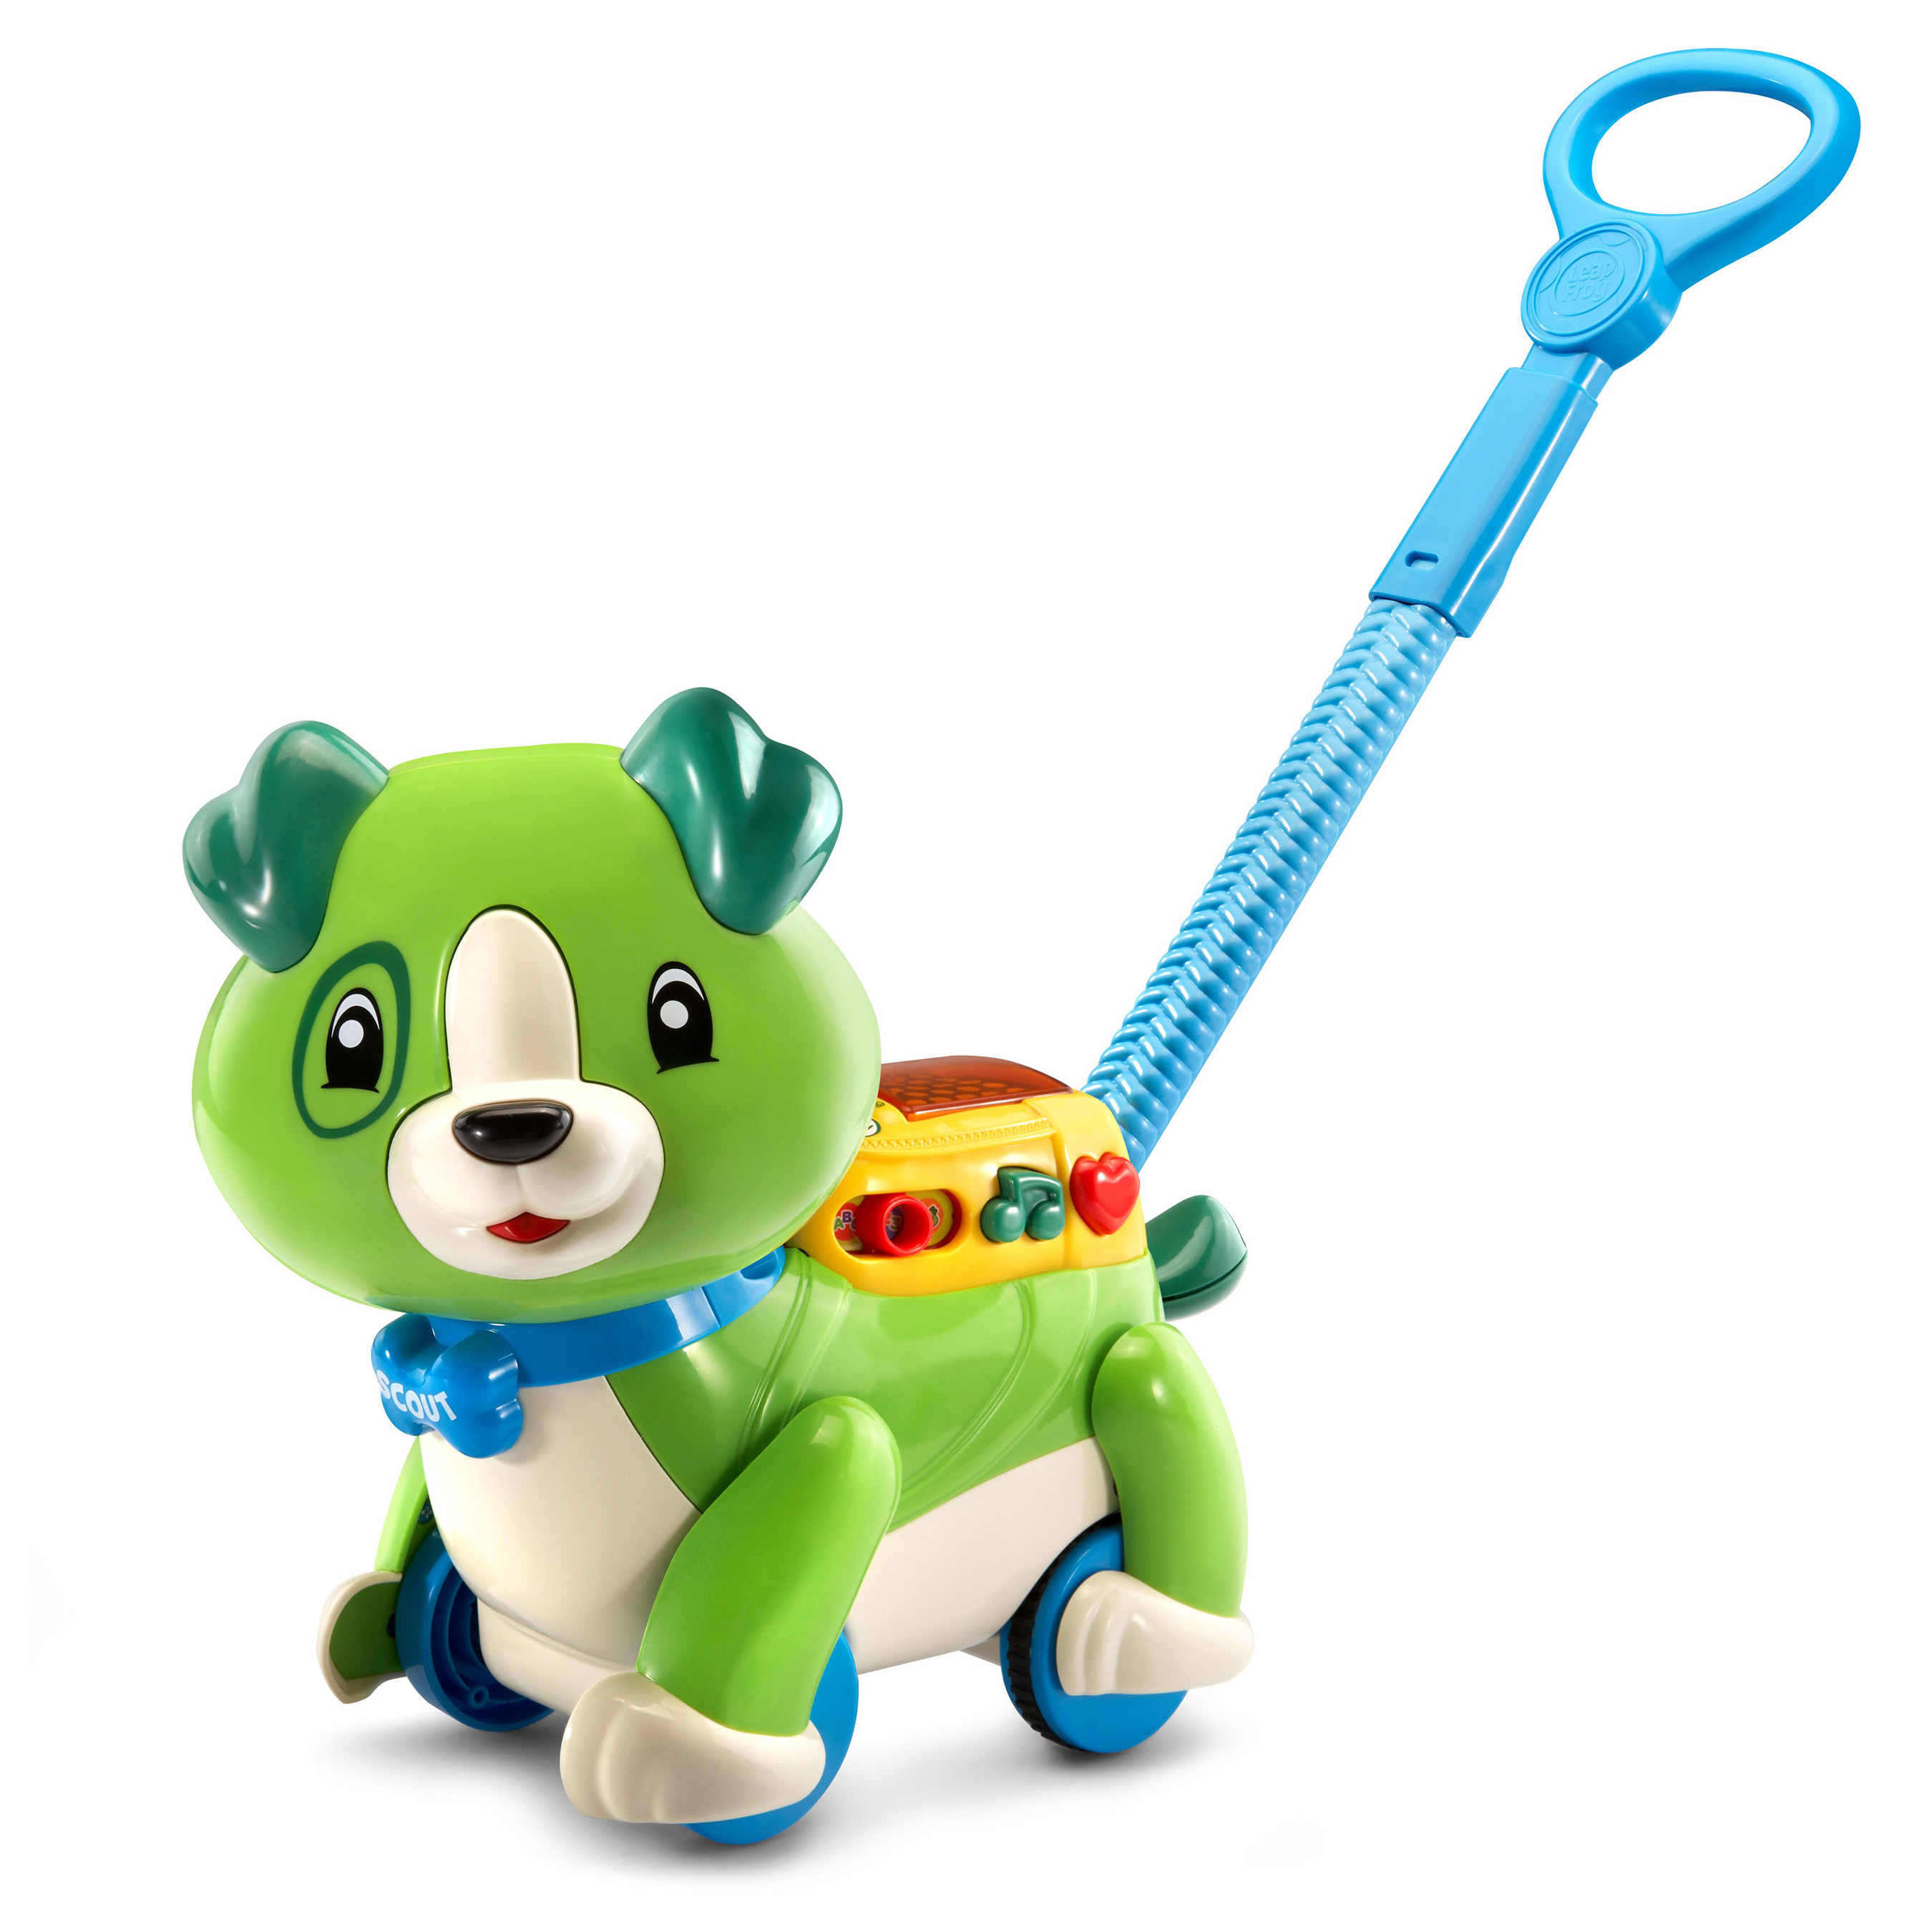 Latest Educational Toys : Leapfrog introduces new infant and preschool learning